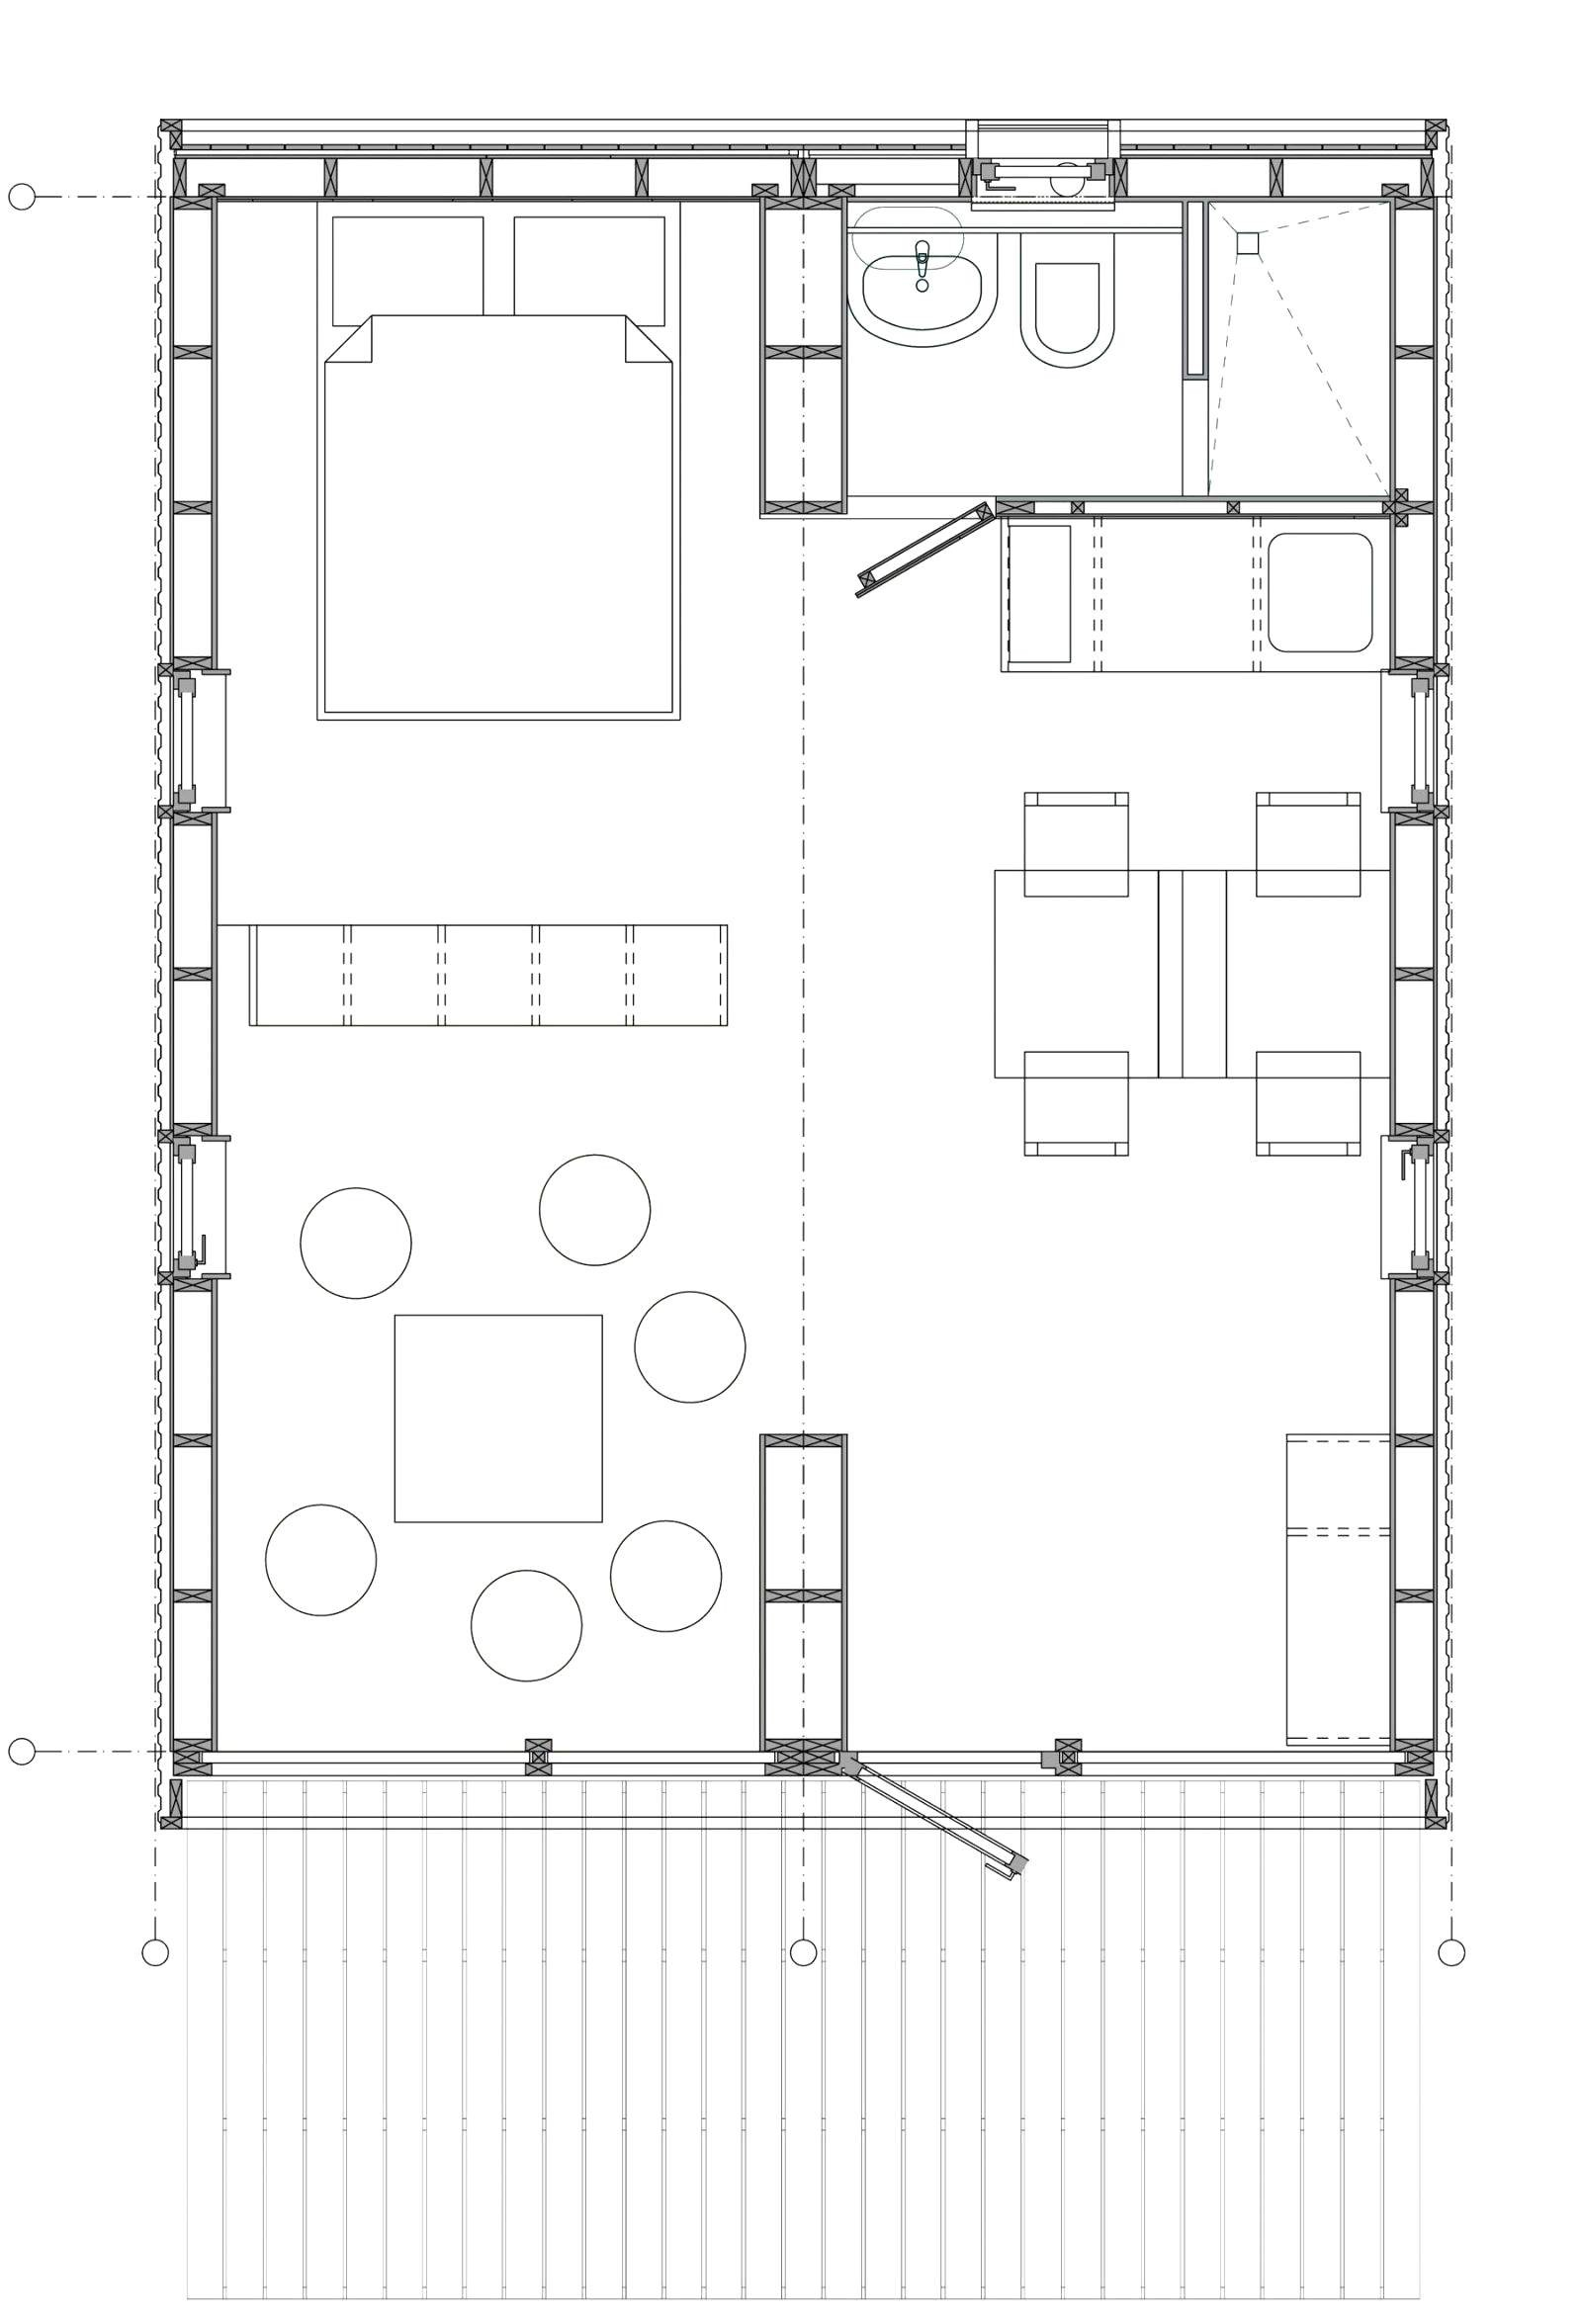 mobile home floor plans in texas new moduline homes floor plans elegant floor plans for modular homes